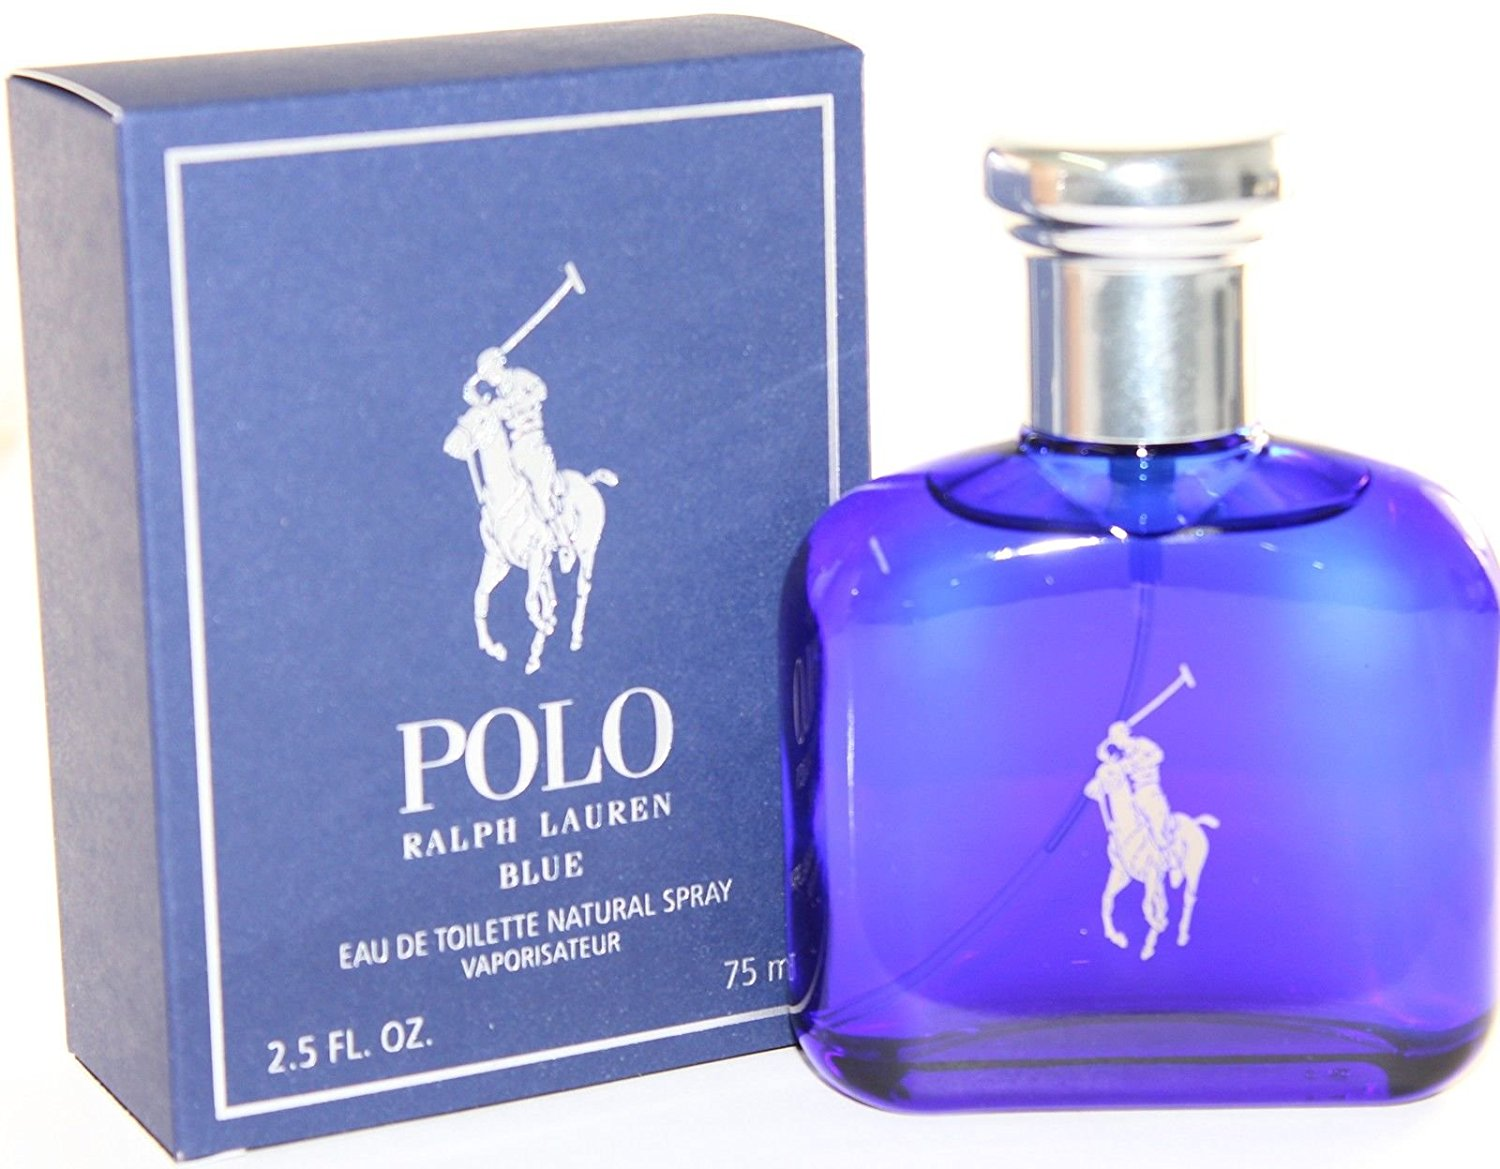 Ralph Lauren Polo Blue for Men Eau de Toilette - 75 ml